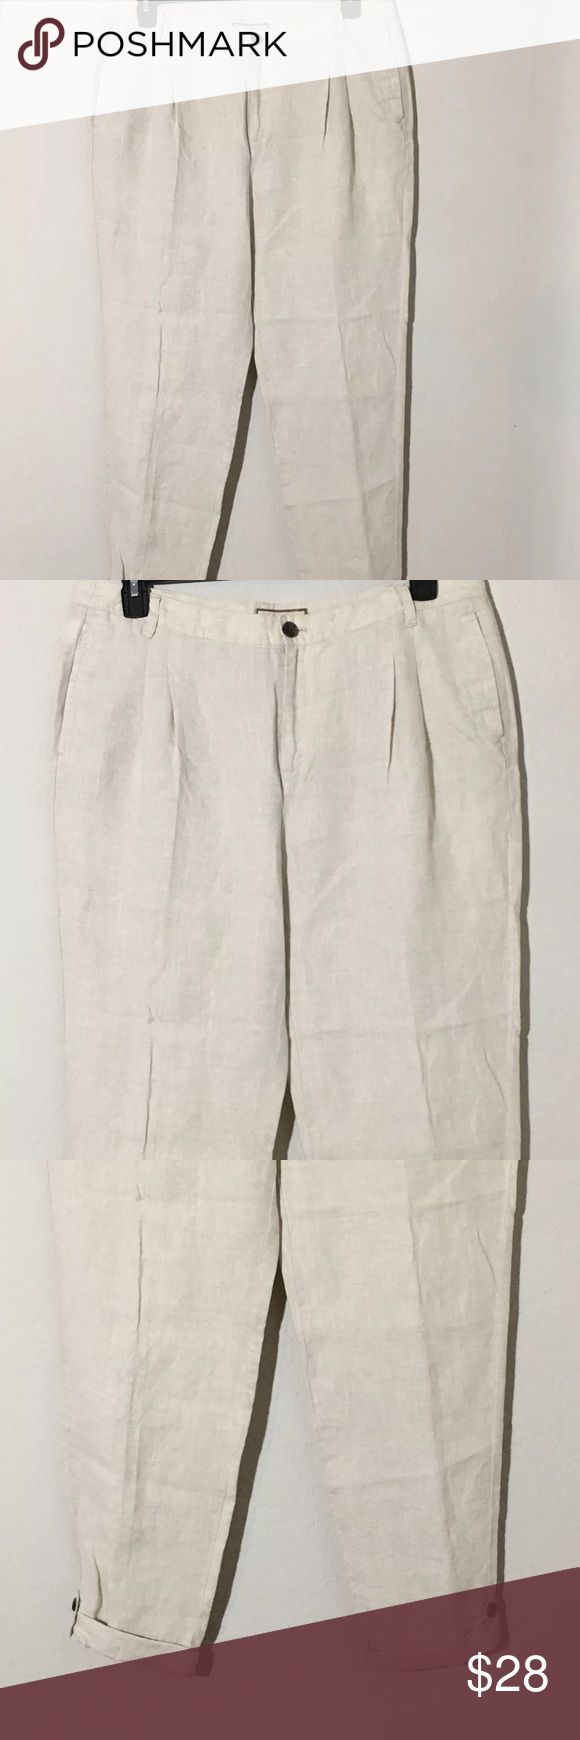 """MNG by Mango Beige Linen Adjustable Crop Pants 14 Women's MNG by Mango beige 100% Linen adjustable cropped pants. Can be worn as cropped or full length pants! Size 14. Measurements 18"""" waist laying flat, 29.5"""" short inseam (cropped), 32"""" long inseam (full length). Excellent condition no flaws Mango Pants Ankle & Cropped"""